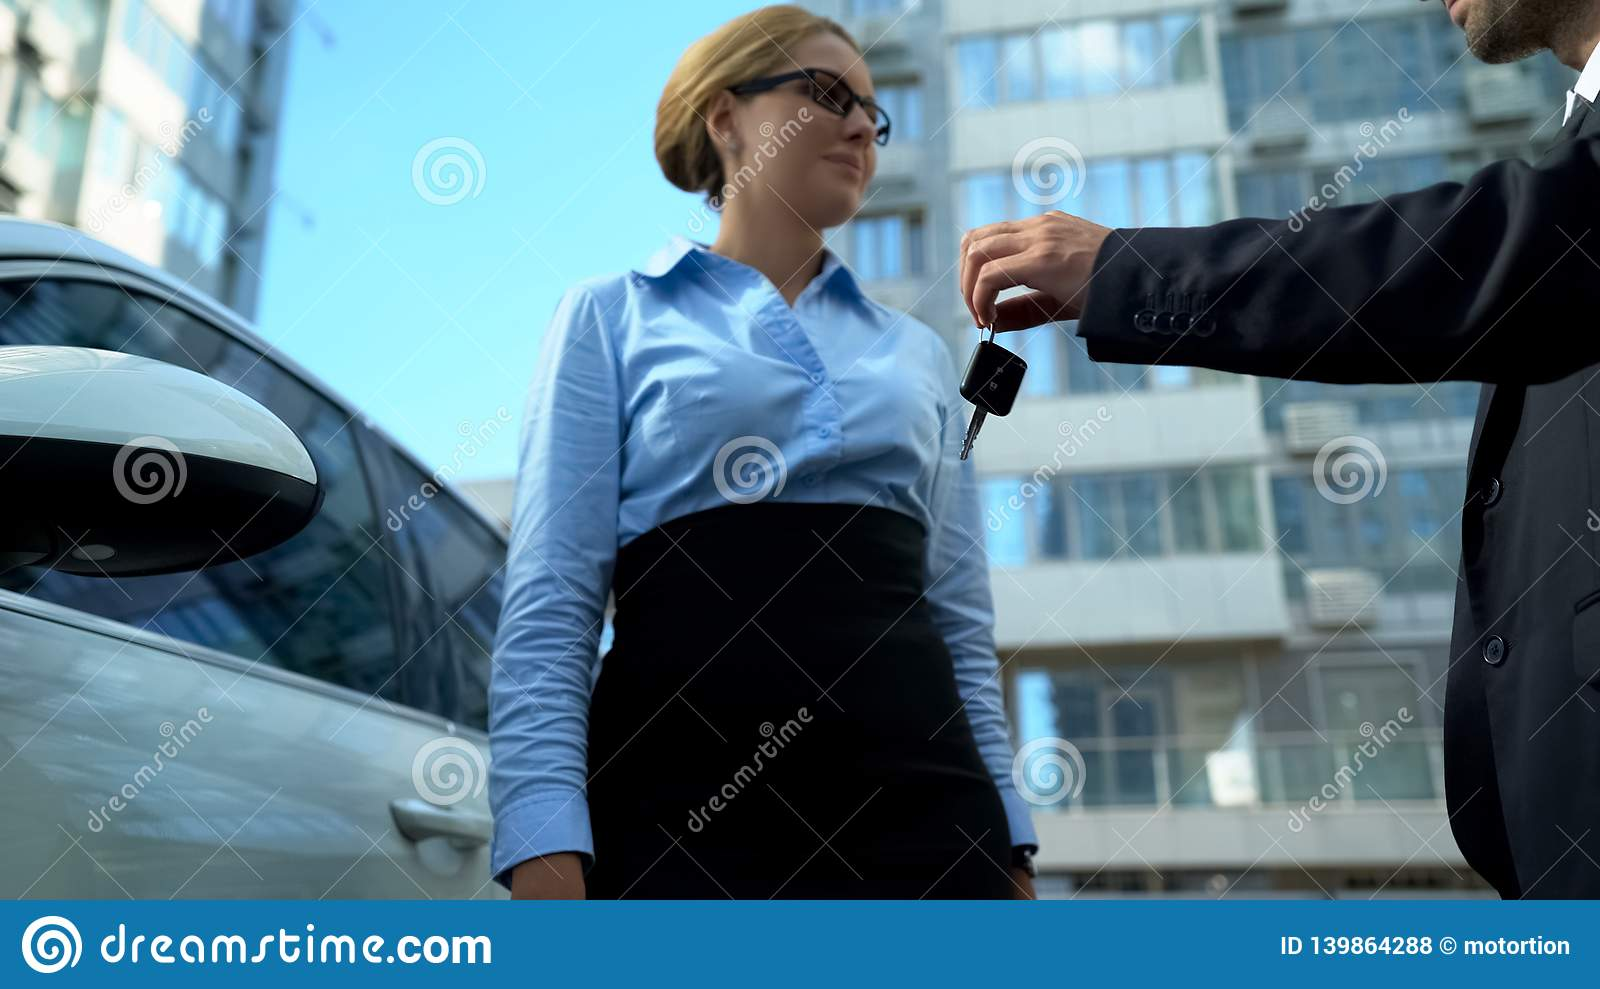 Businesswoman receiving keys to luxury auto from dealer, car loan or purchase